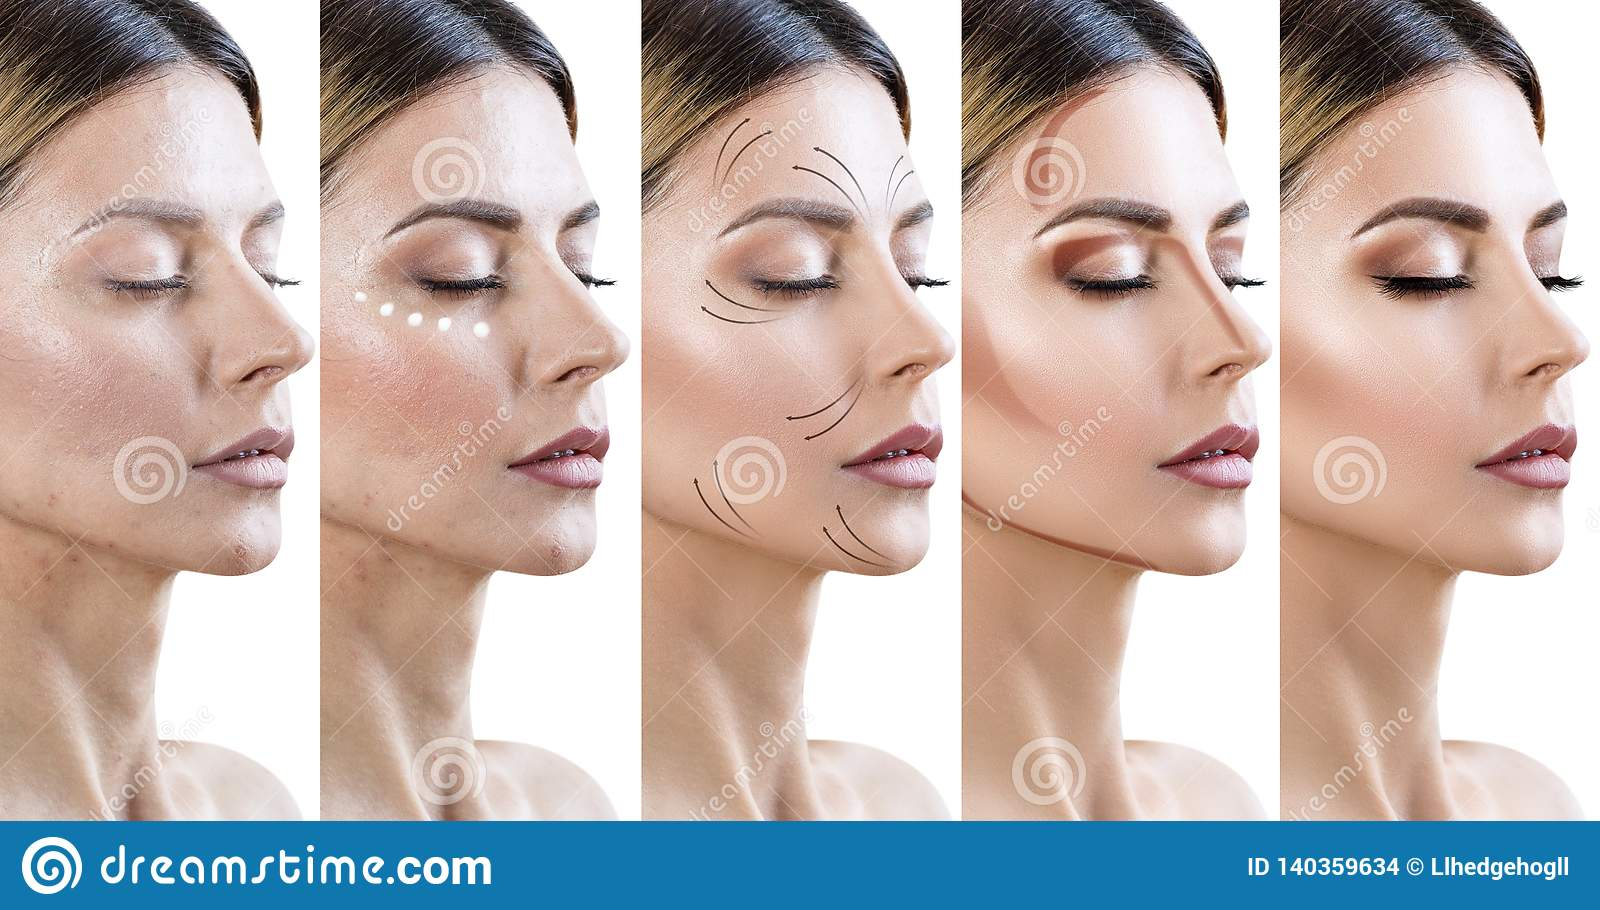 Collage Of Woman Applying Makeup Step By Step Stock Photo Image Of Woman Collage 140359634